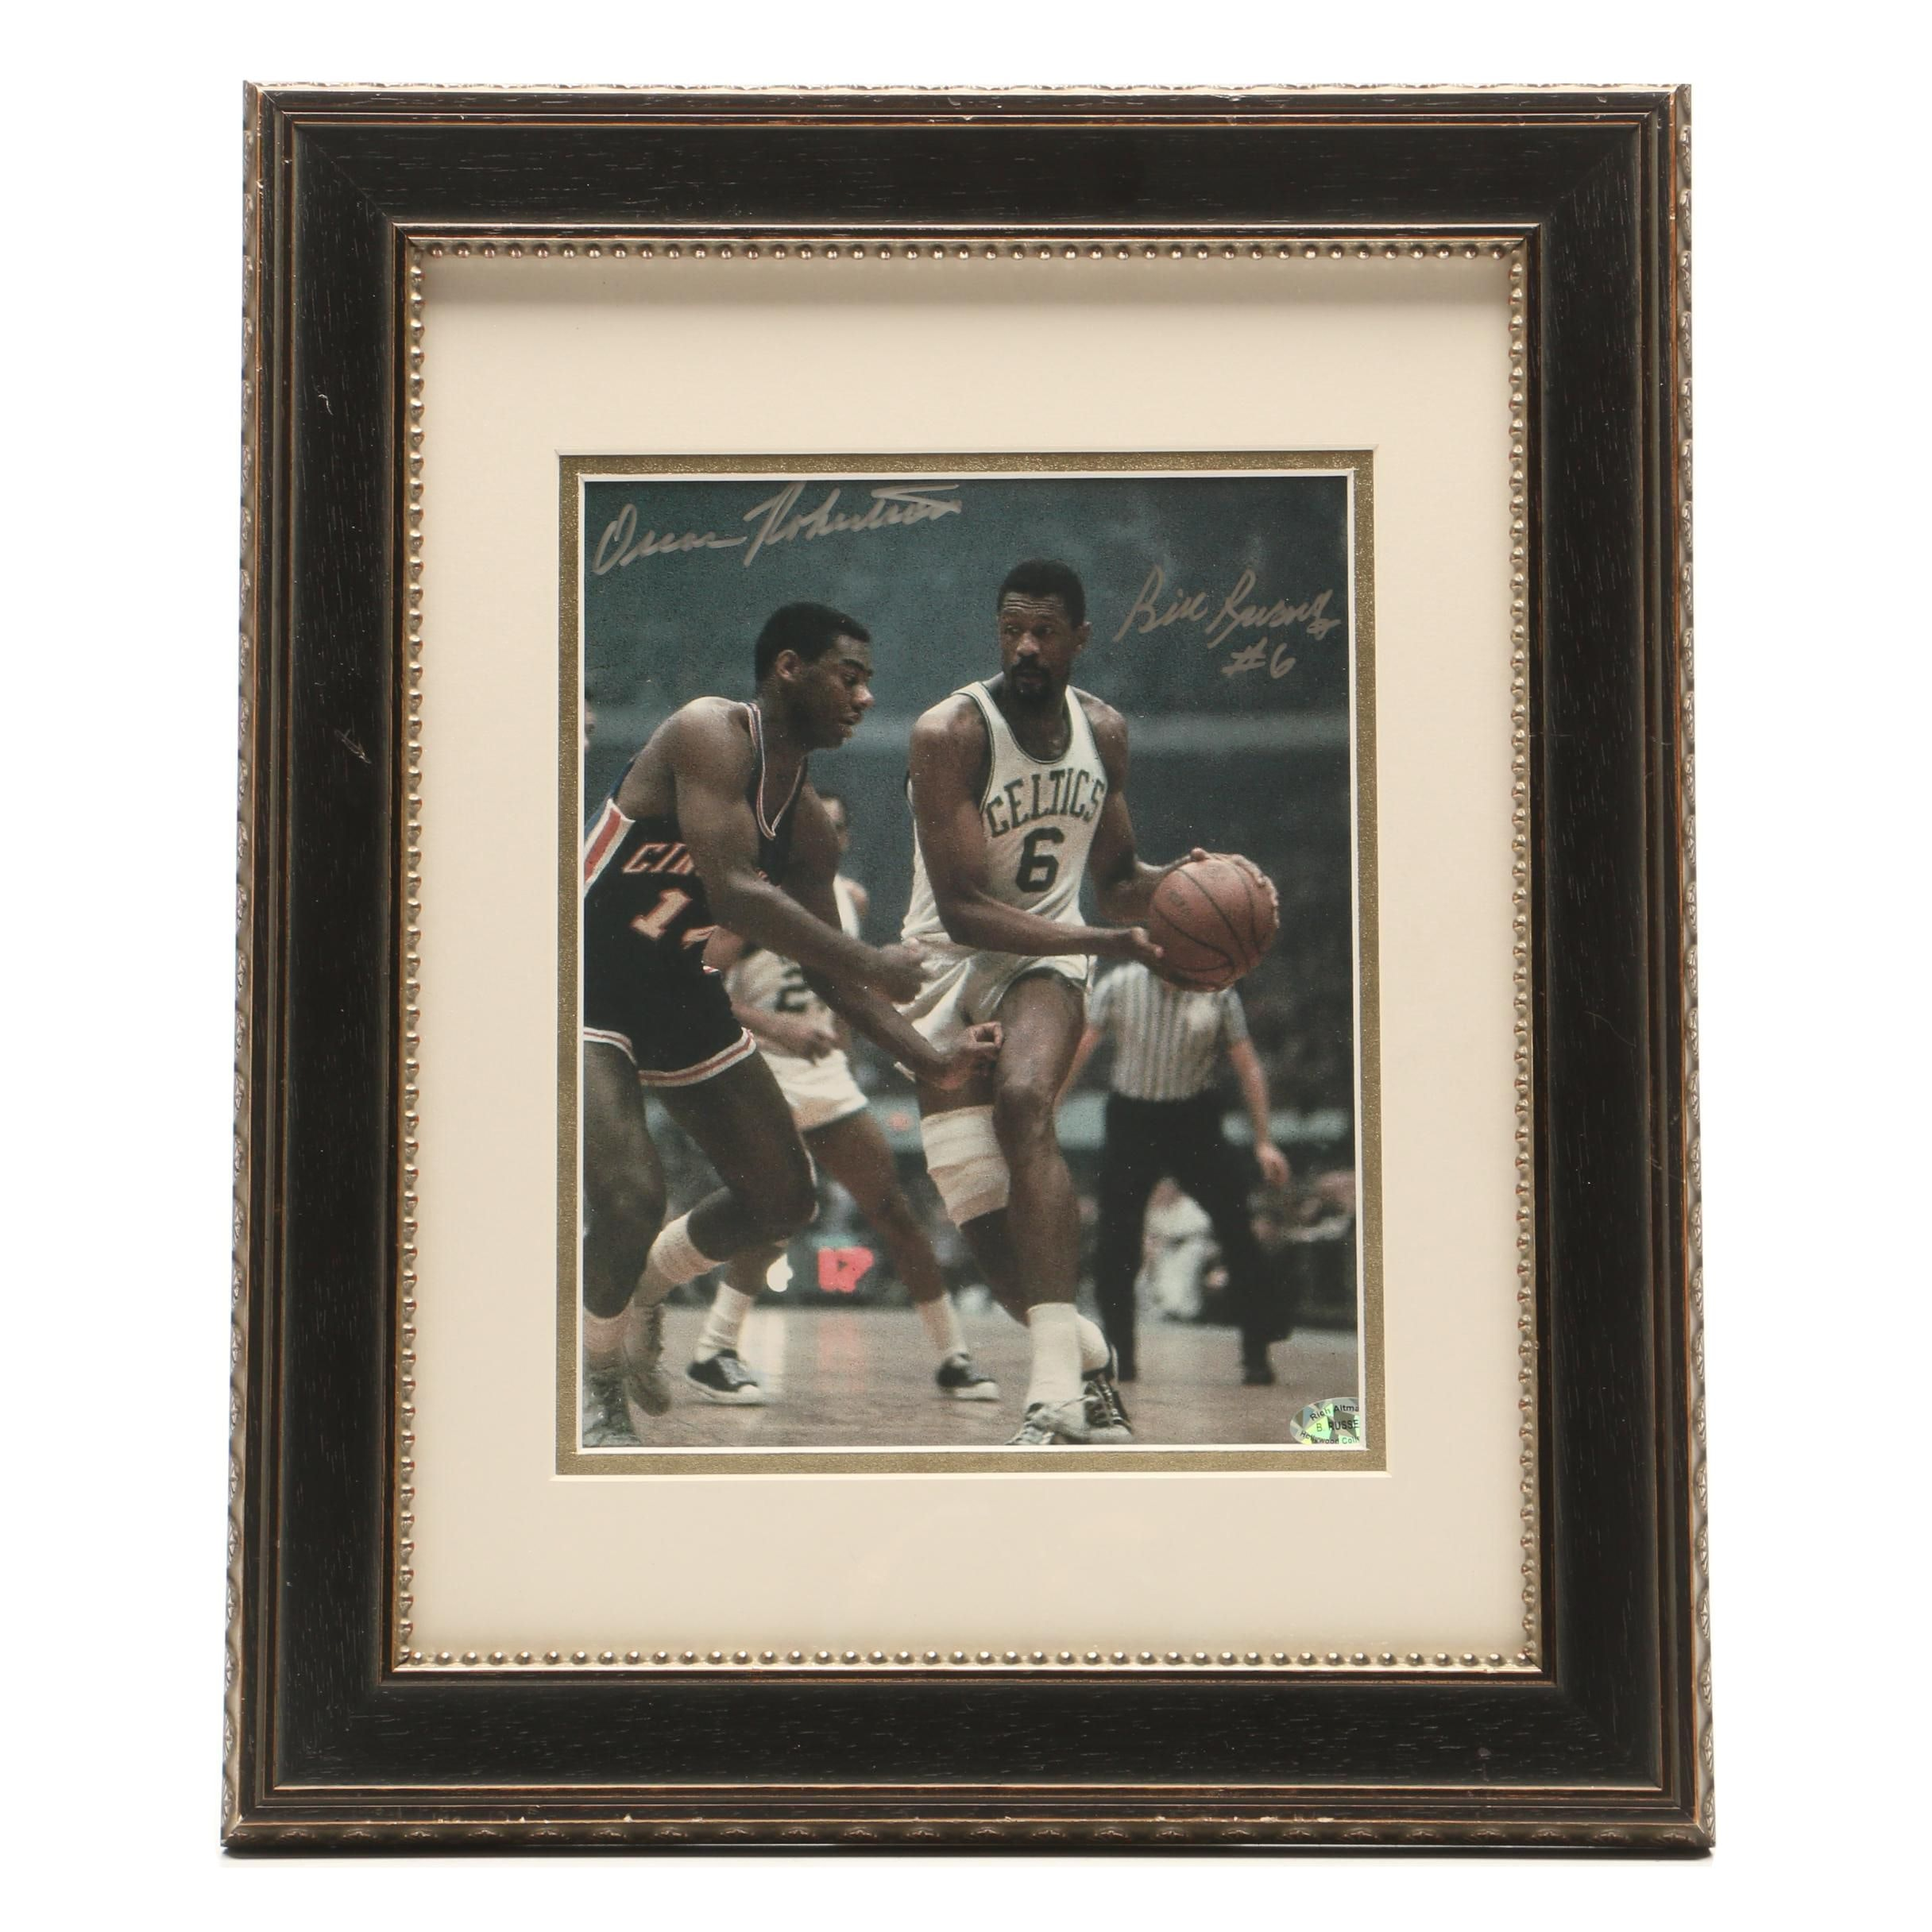 Framed Oscar Robertson and Bill Russell Signed Photo Print    COA - Russell Only